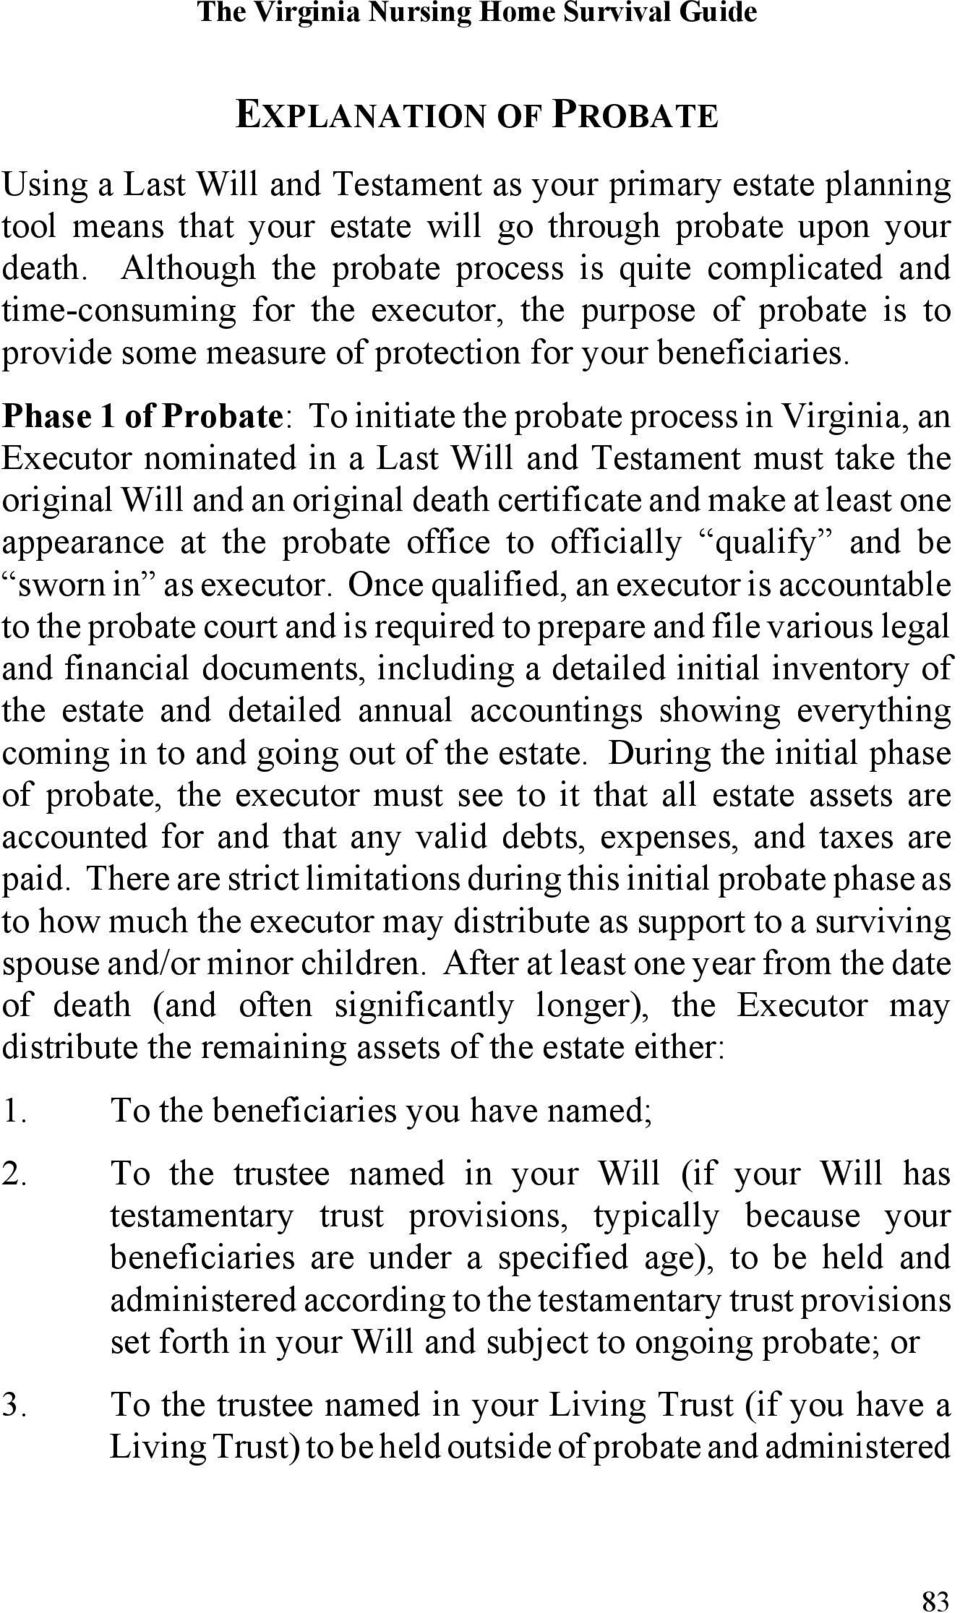 Phase 1 of Probate: To initiate the probate process in Virginia, an Executor nominated in a Last Will and Testament must take the original Will and an original death certificate and make at least one